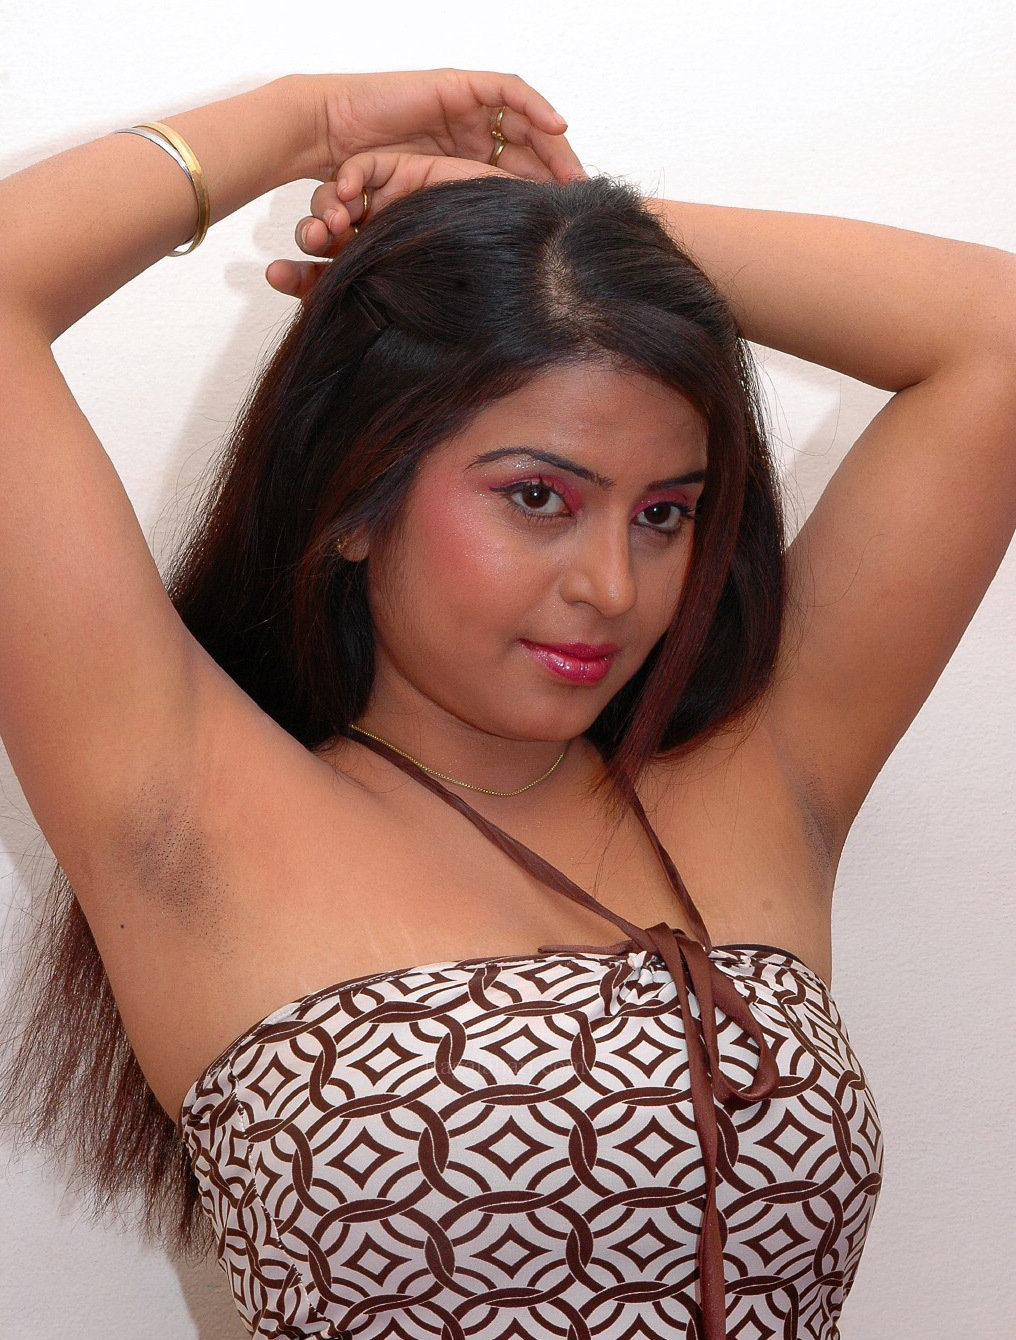 Have removed desi girl hairy armpits